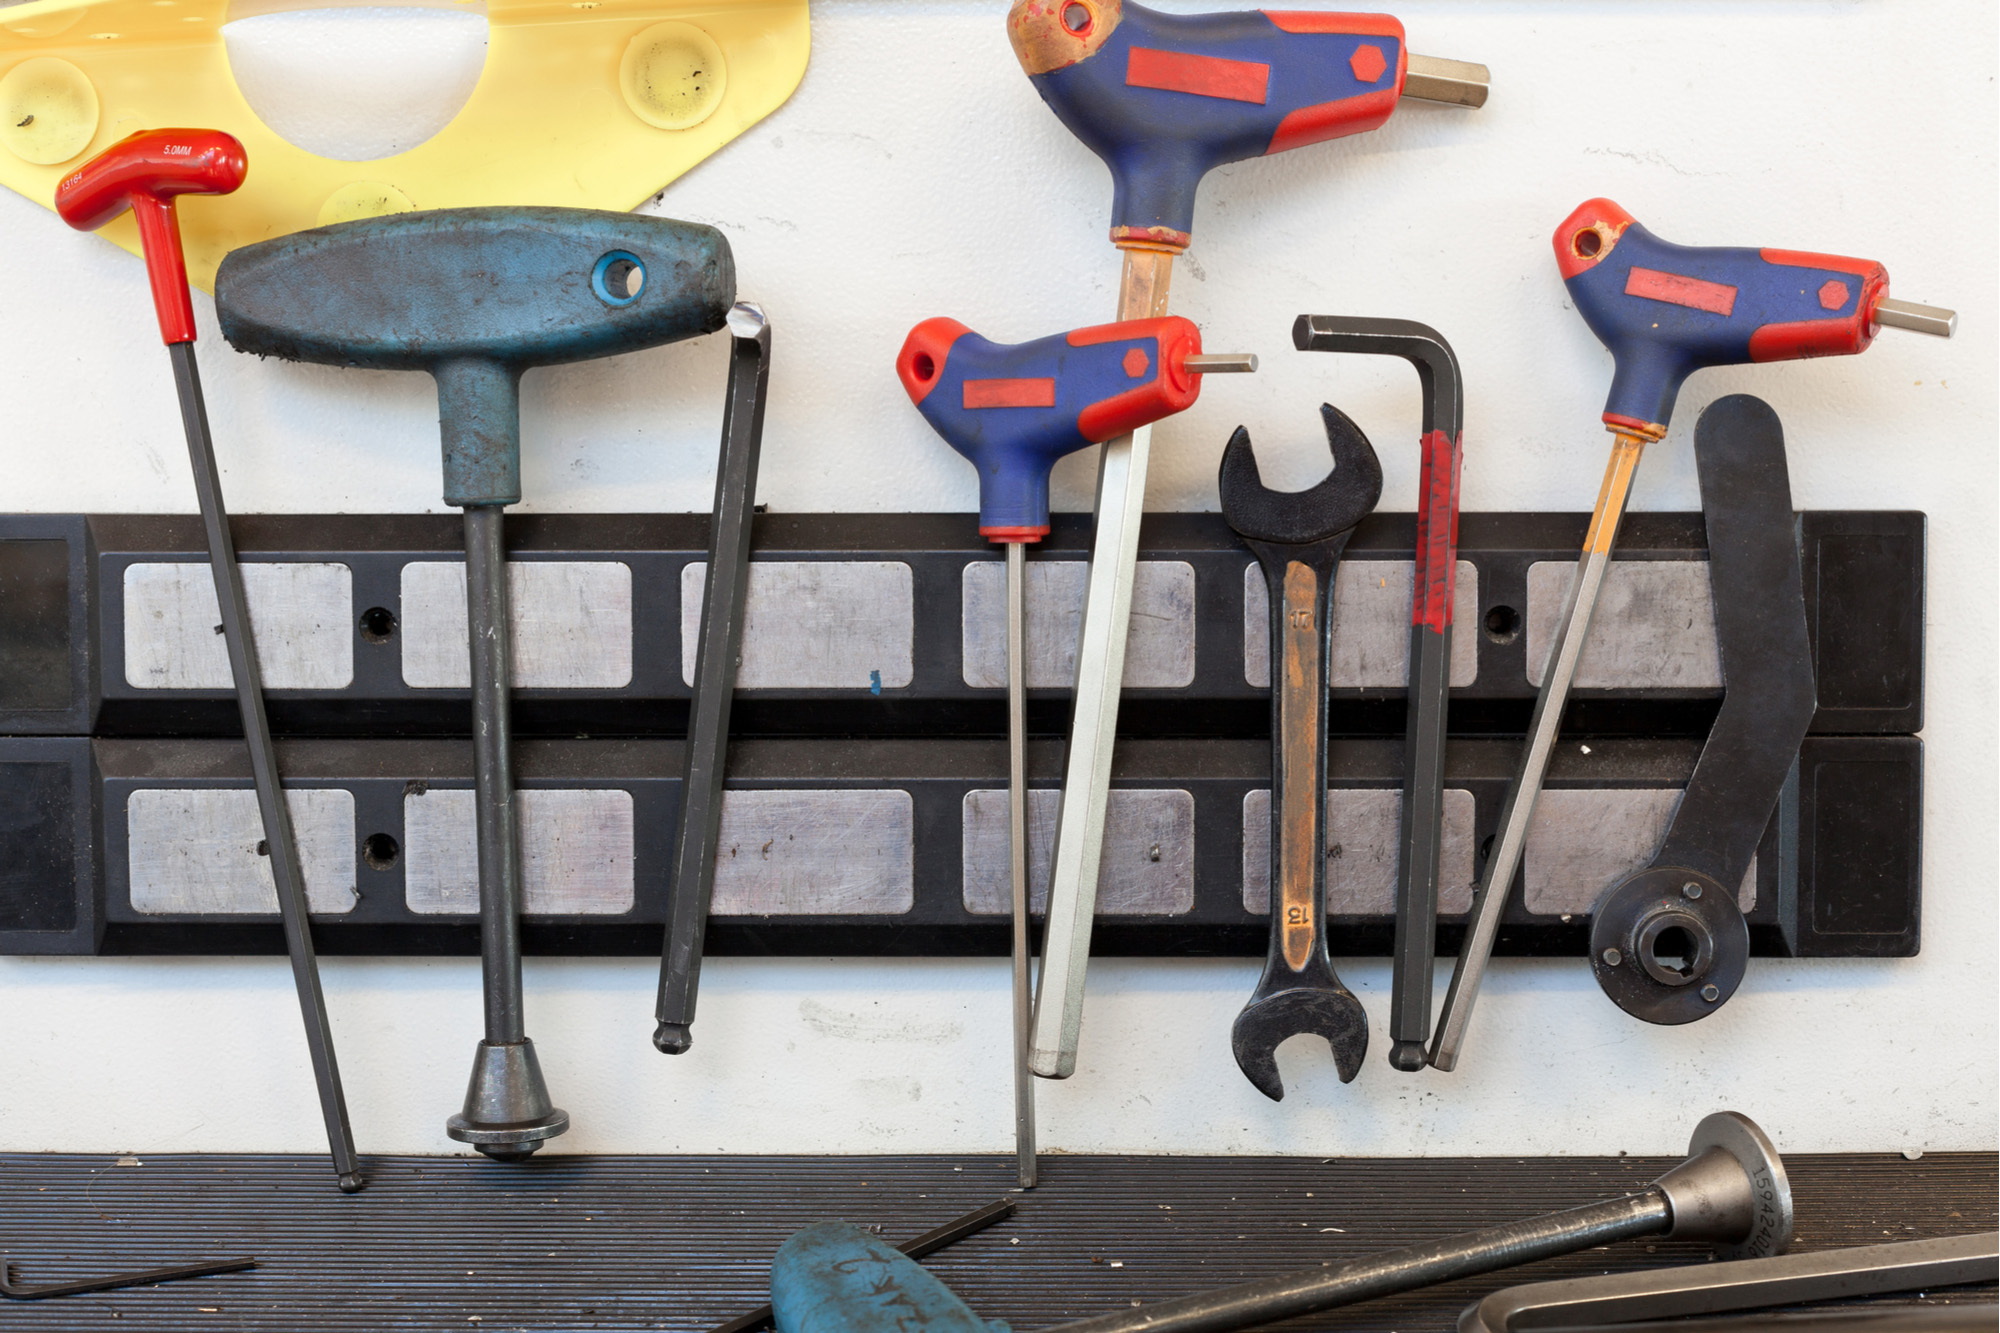 Tools on a magnetic holder - 72 ppi